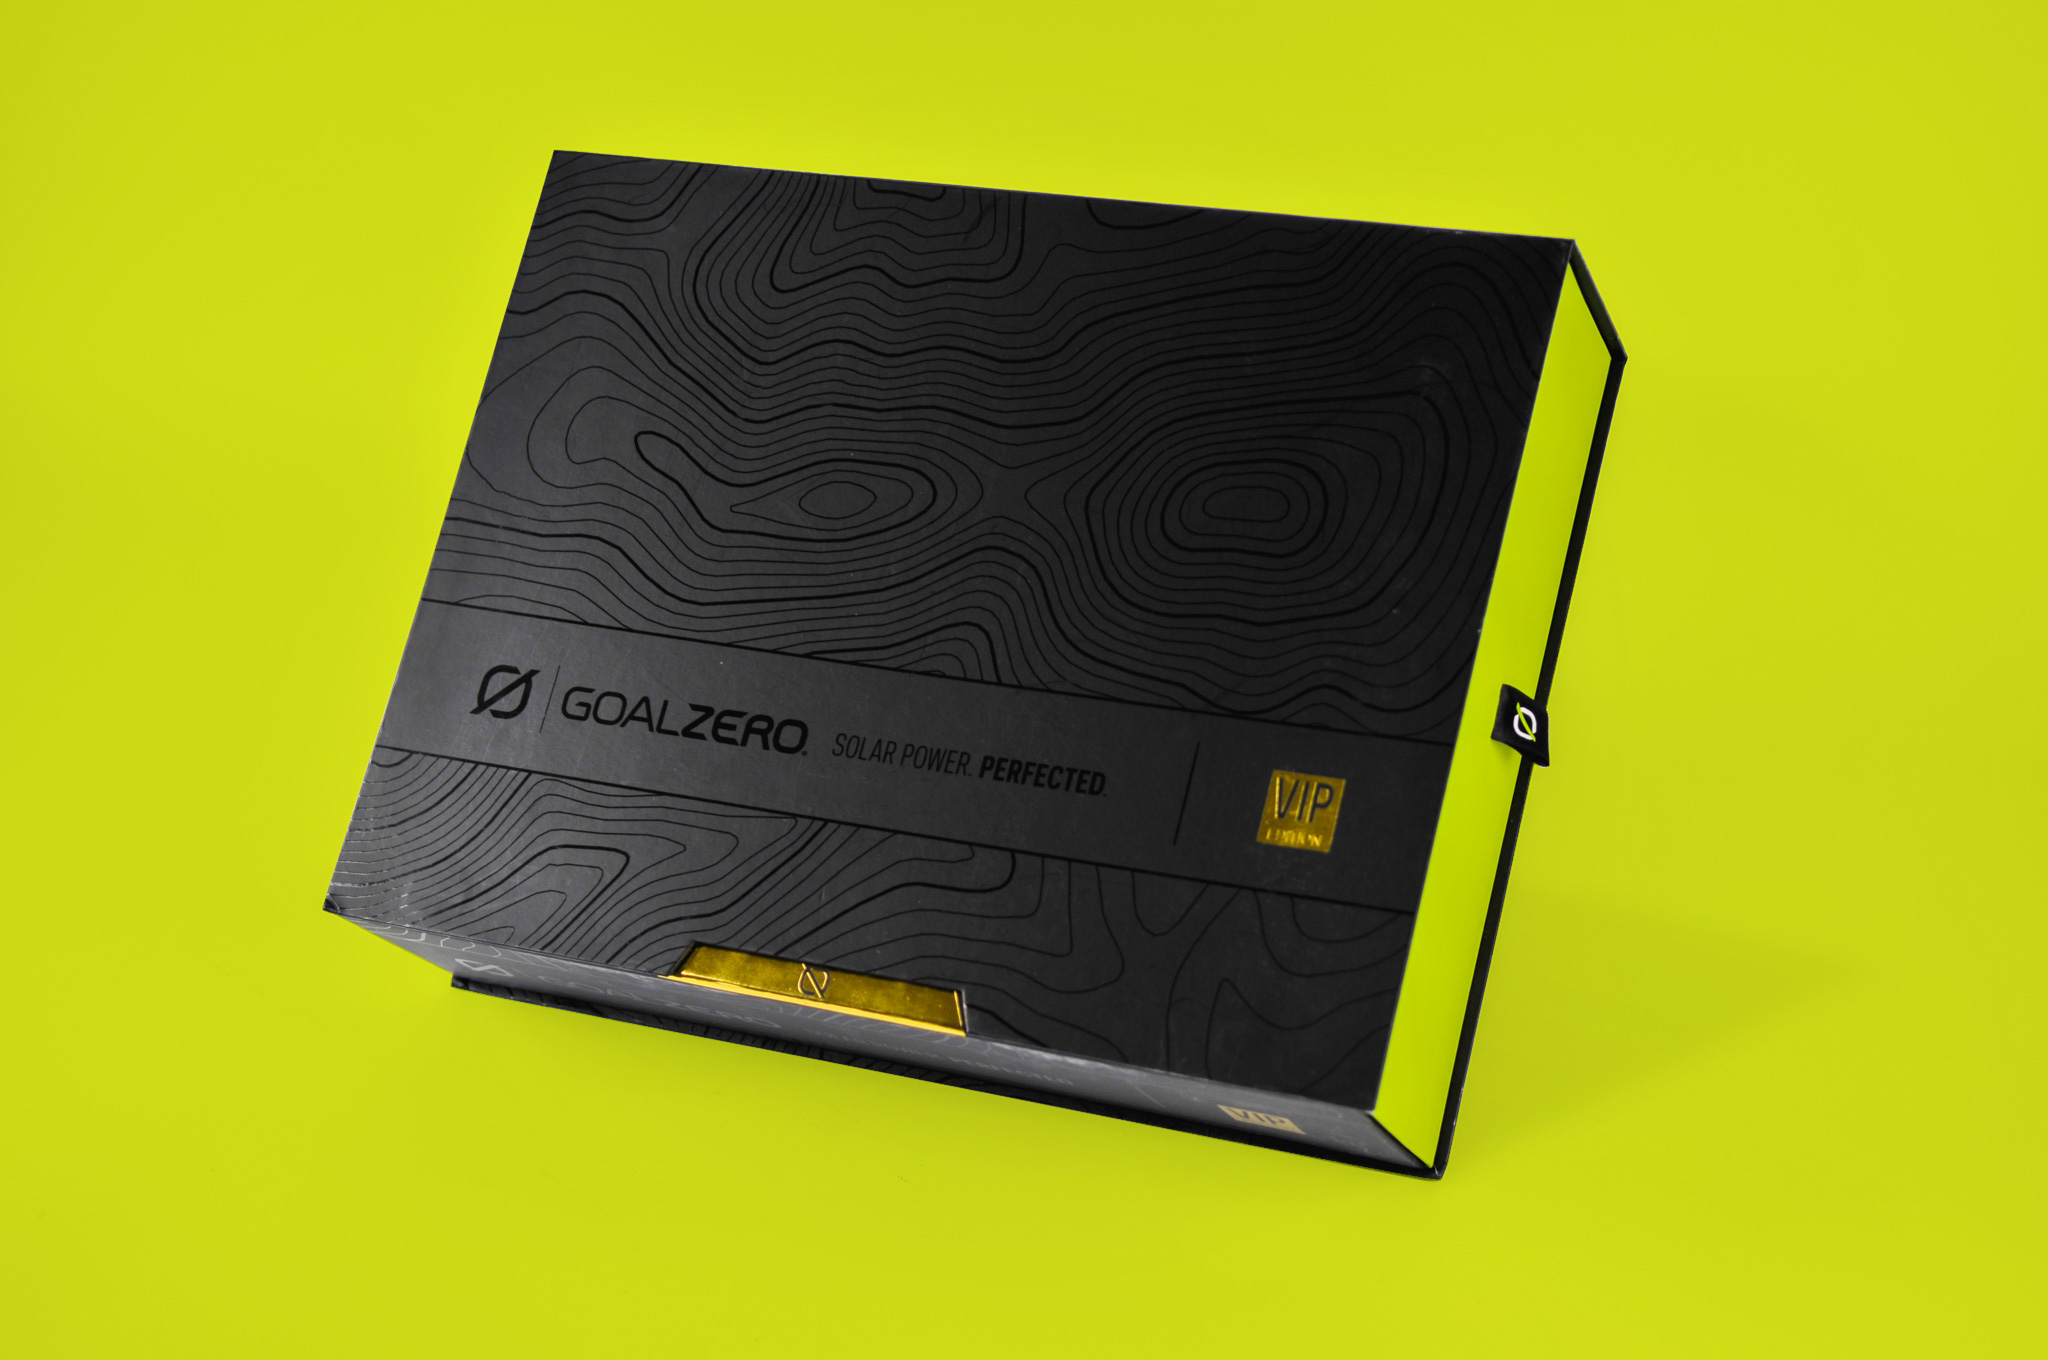 goal zer vip packaging